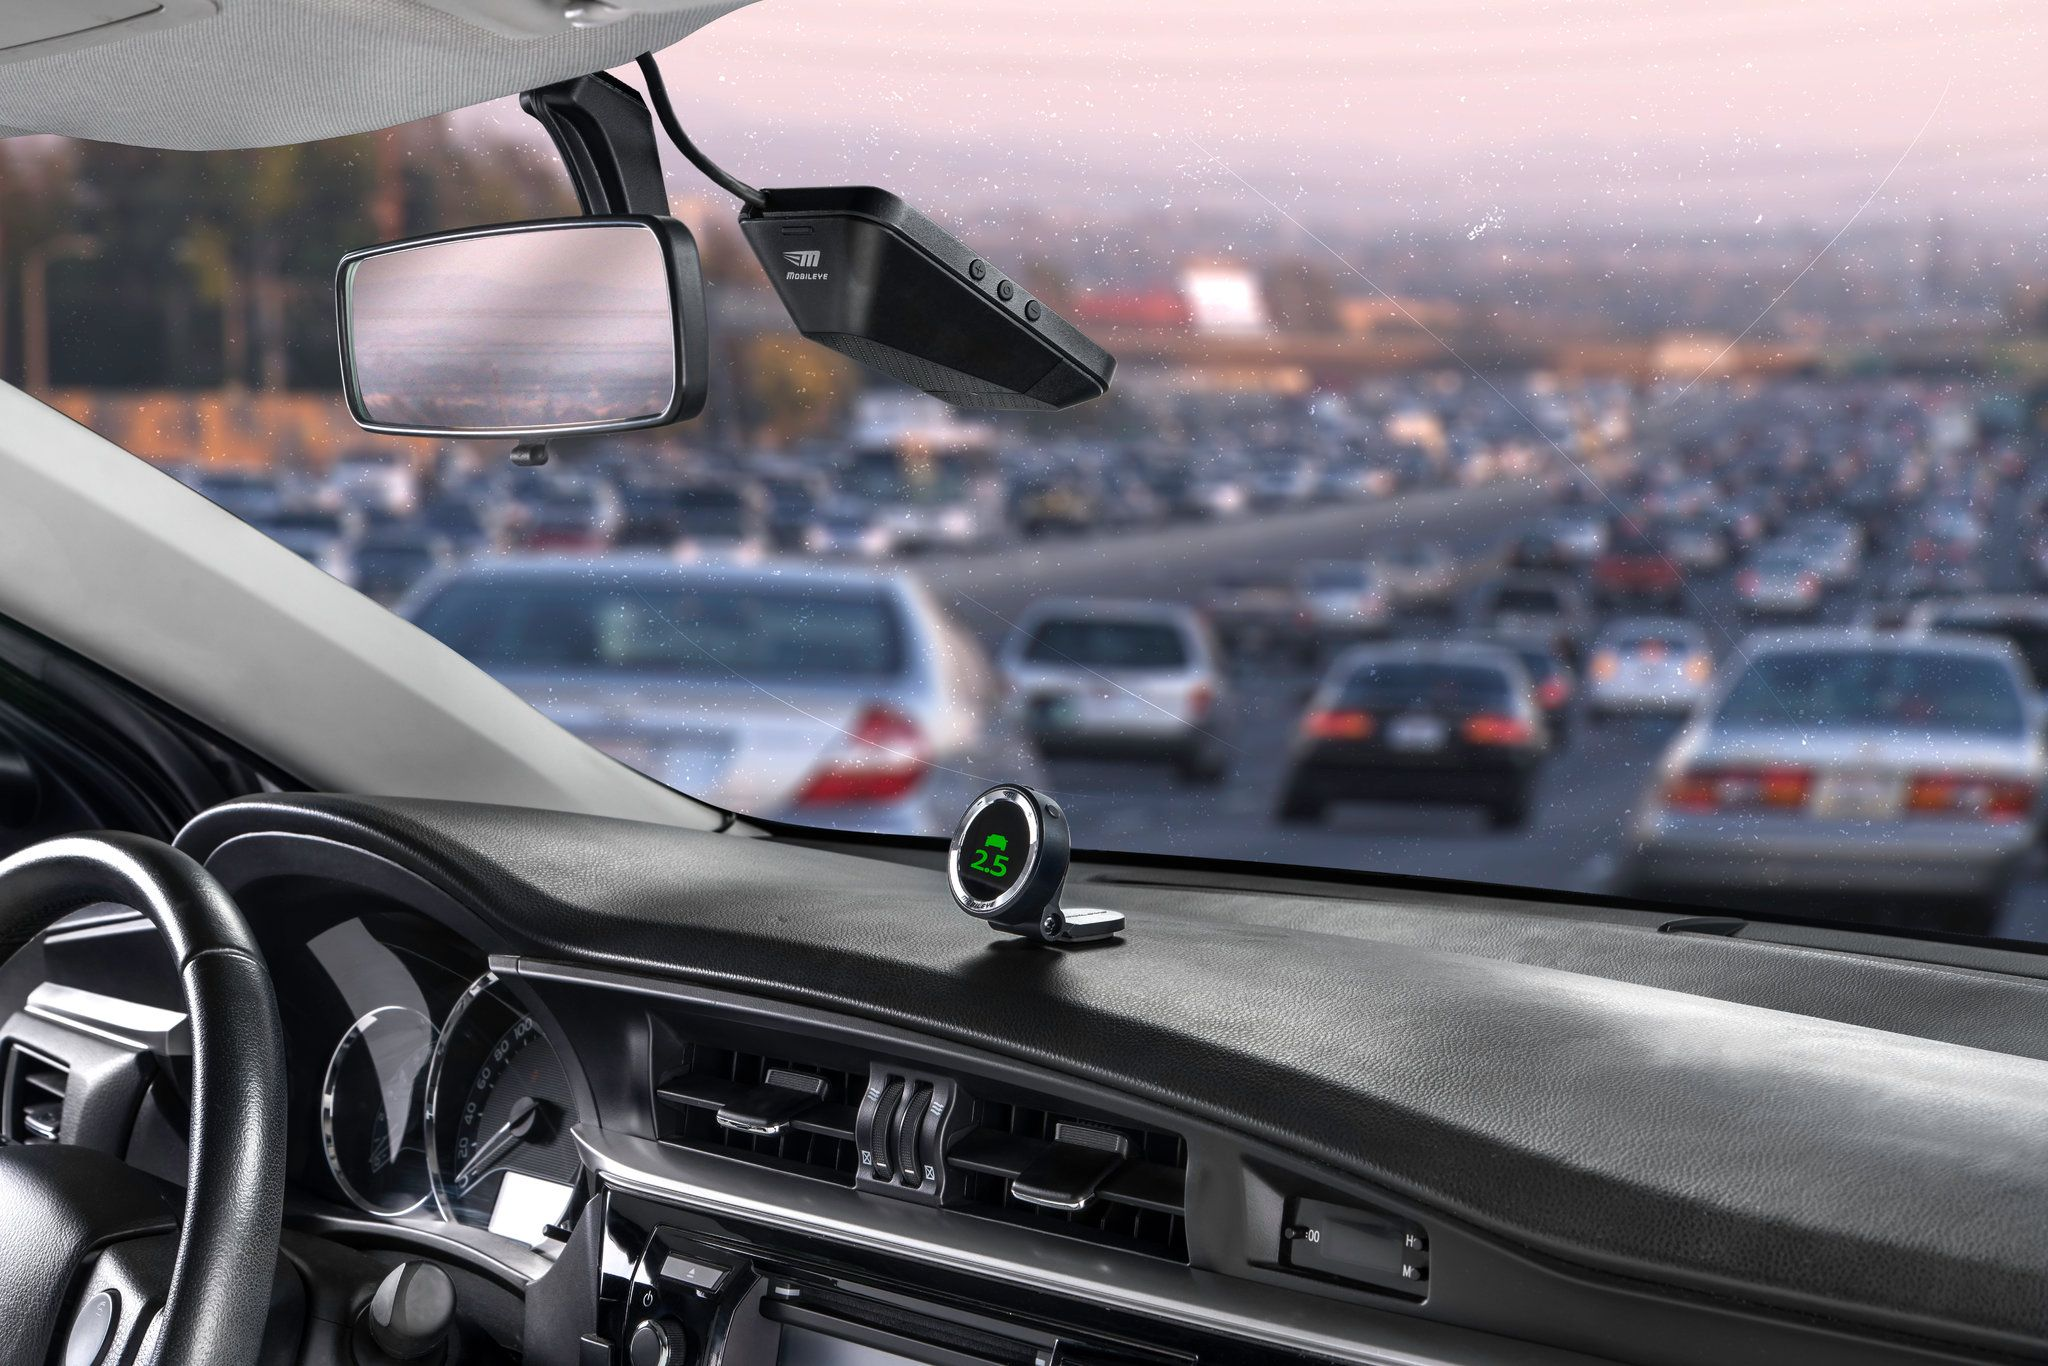 High Tech Collision Warnings No Matter How Smart Your Car